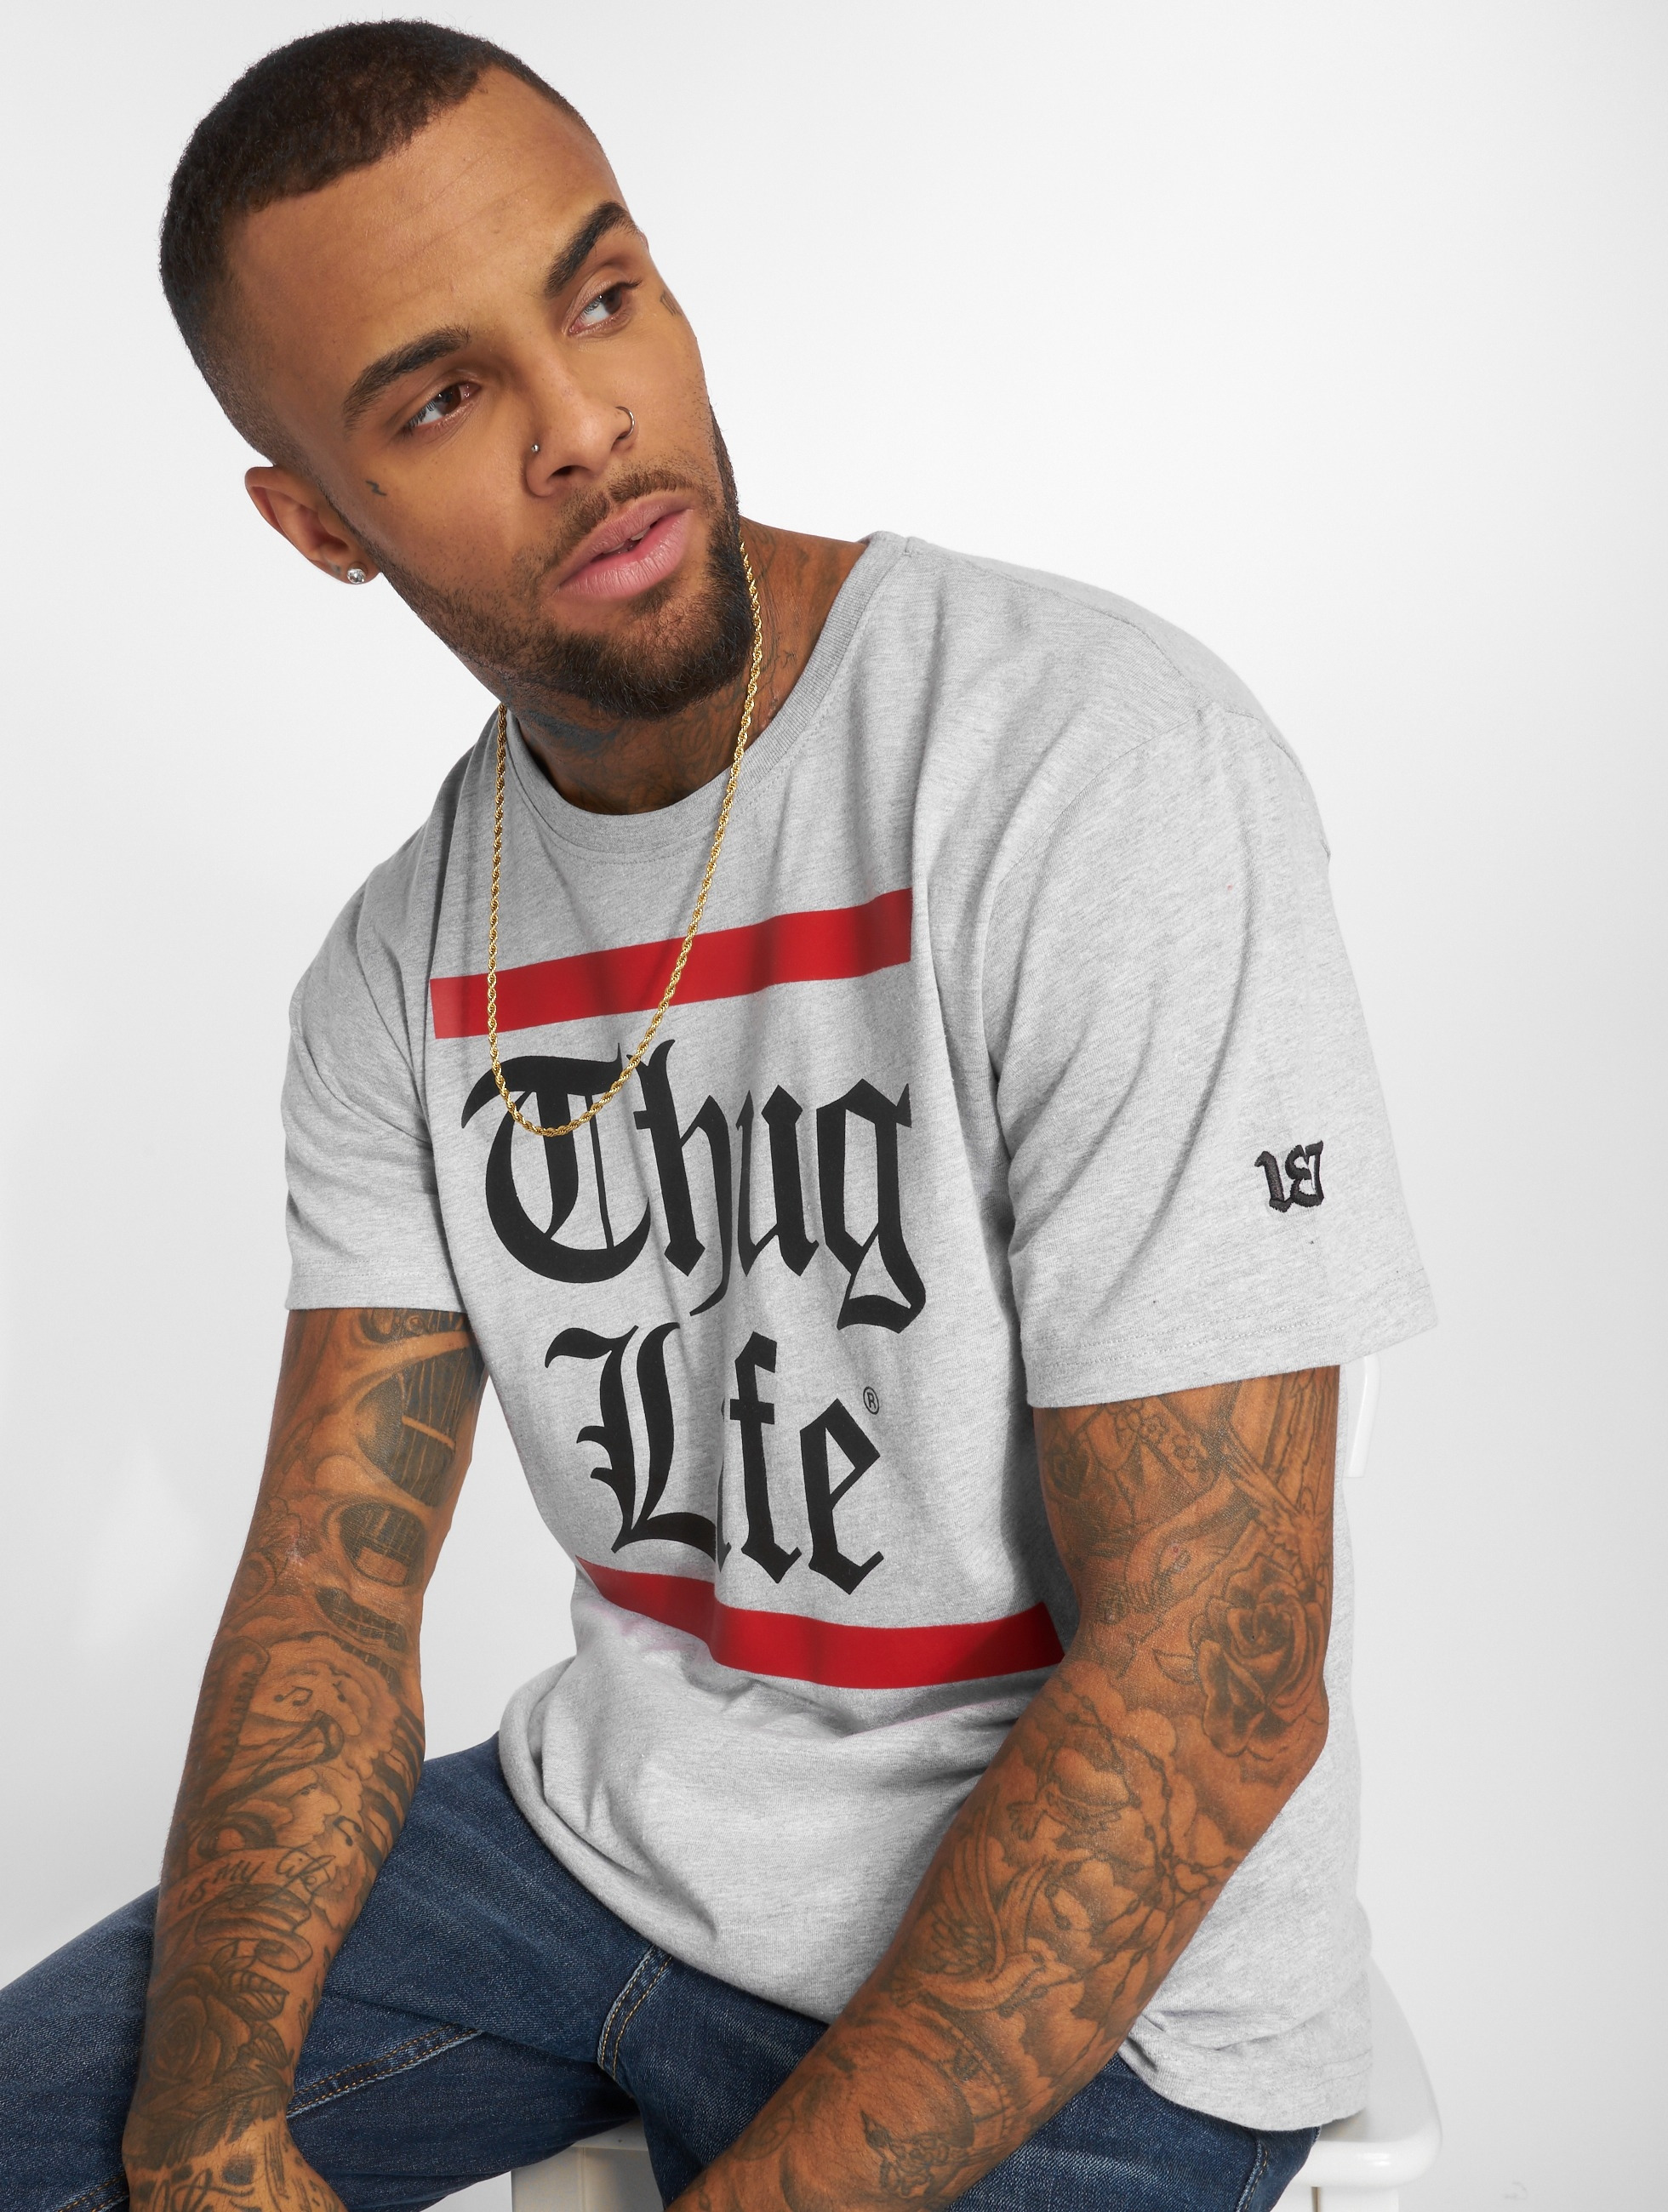 Thug Life / T-Shirt B.Gothic in grey M